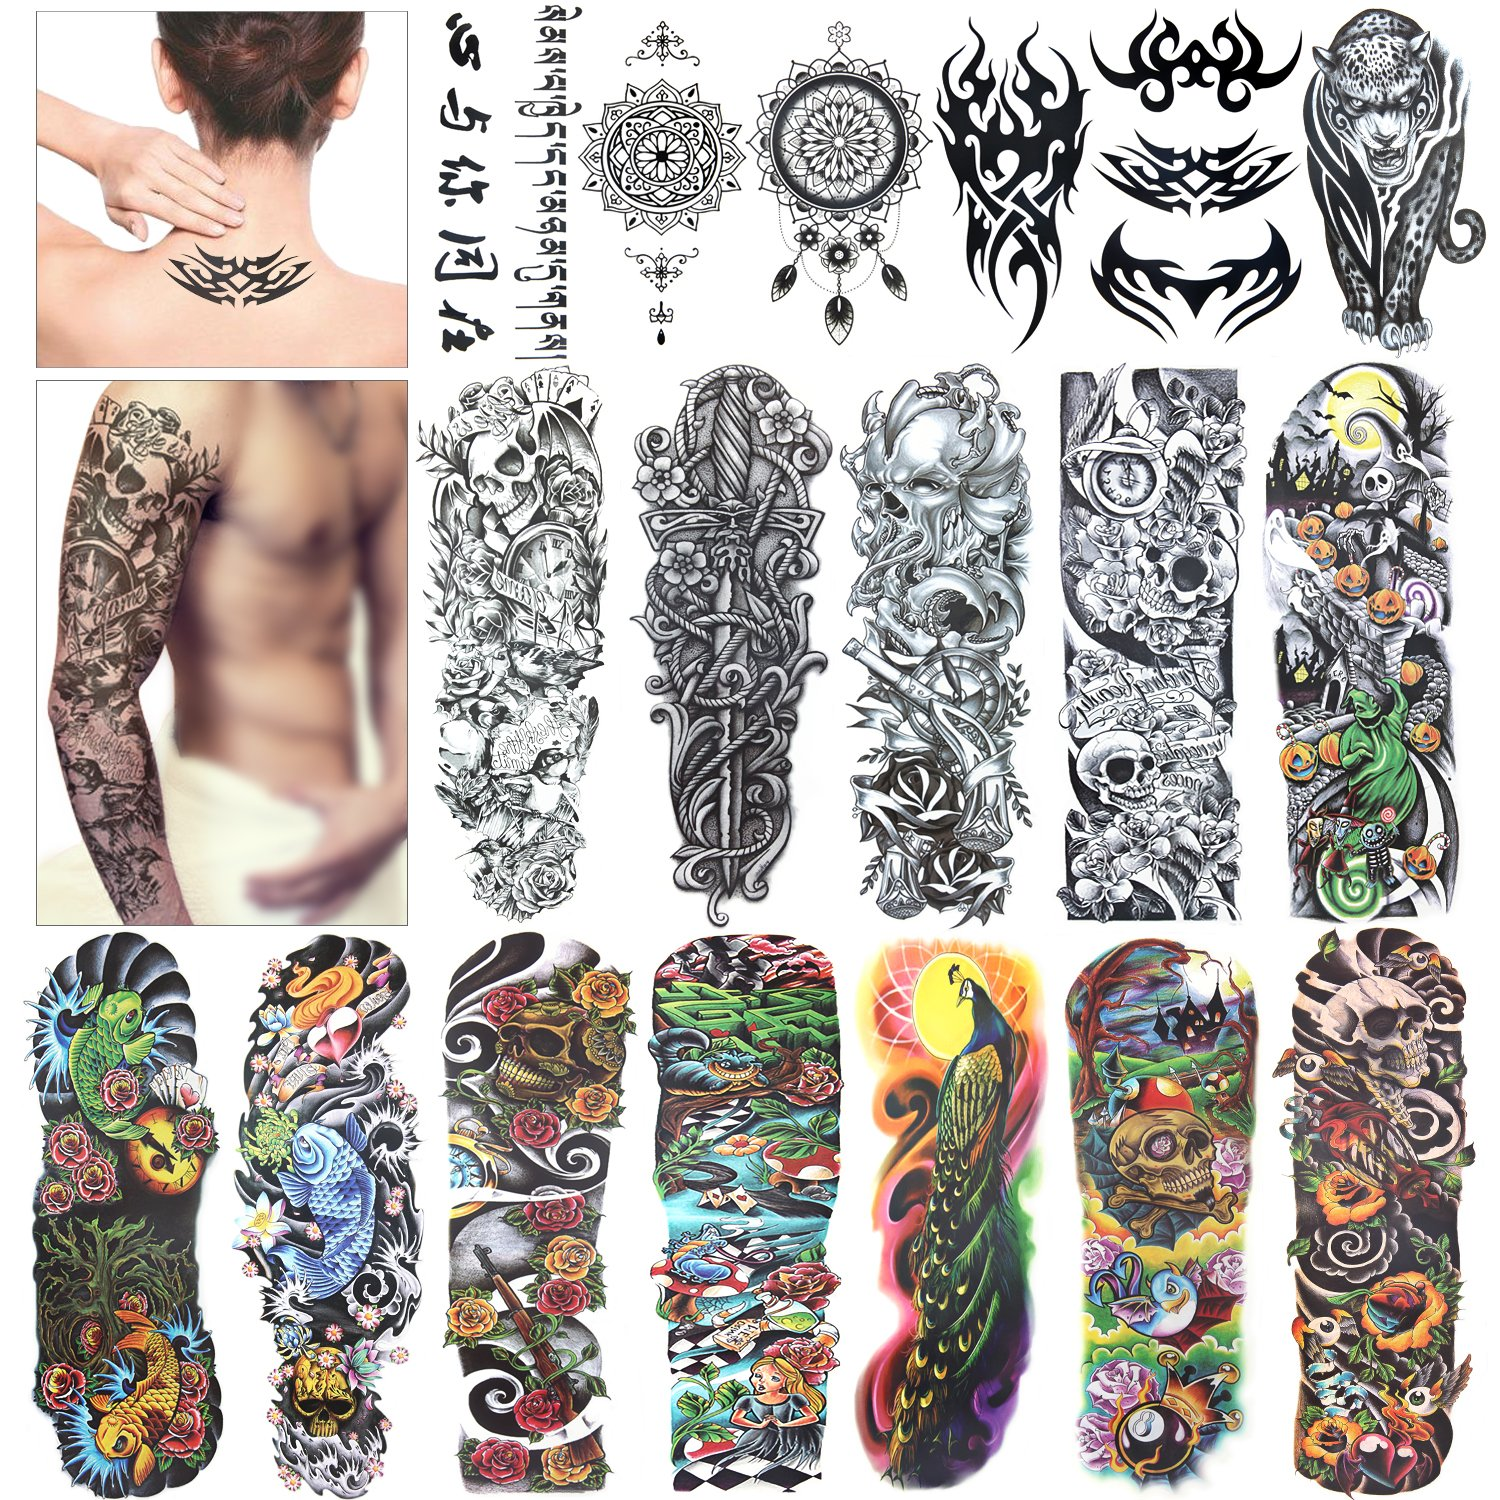 09273b863 Full Arm Temporary Tattoo, Konsait Extra Temporary Tattoo Black tattoo Body  Stickers for Man Women